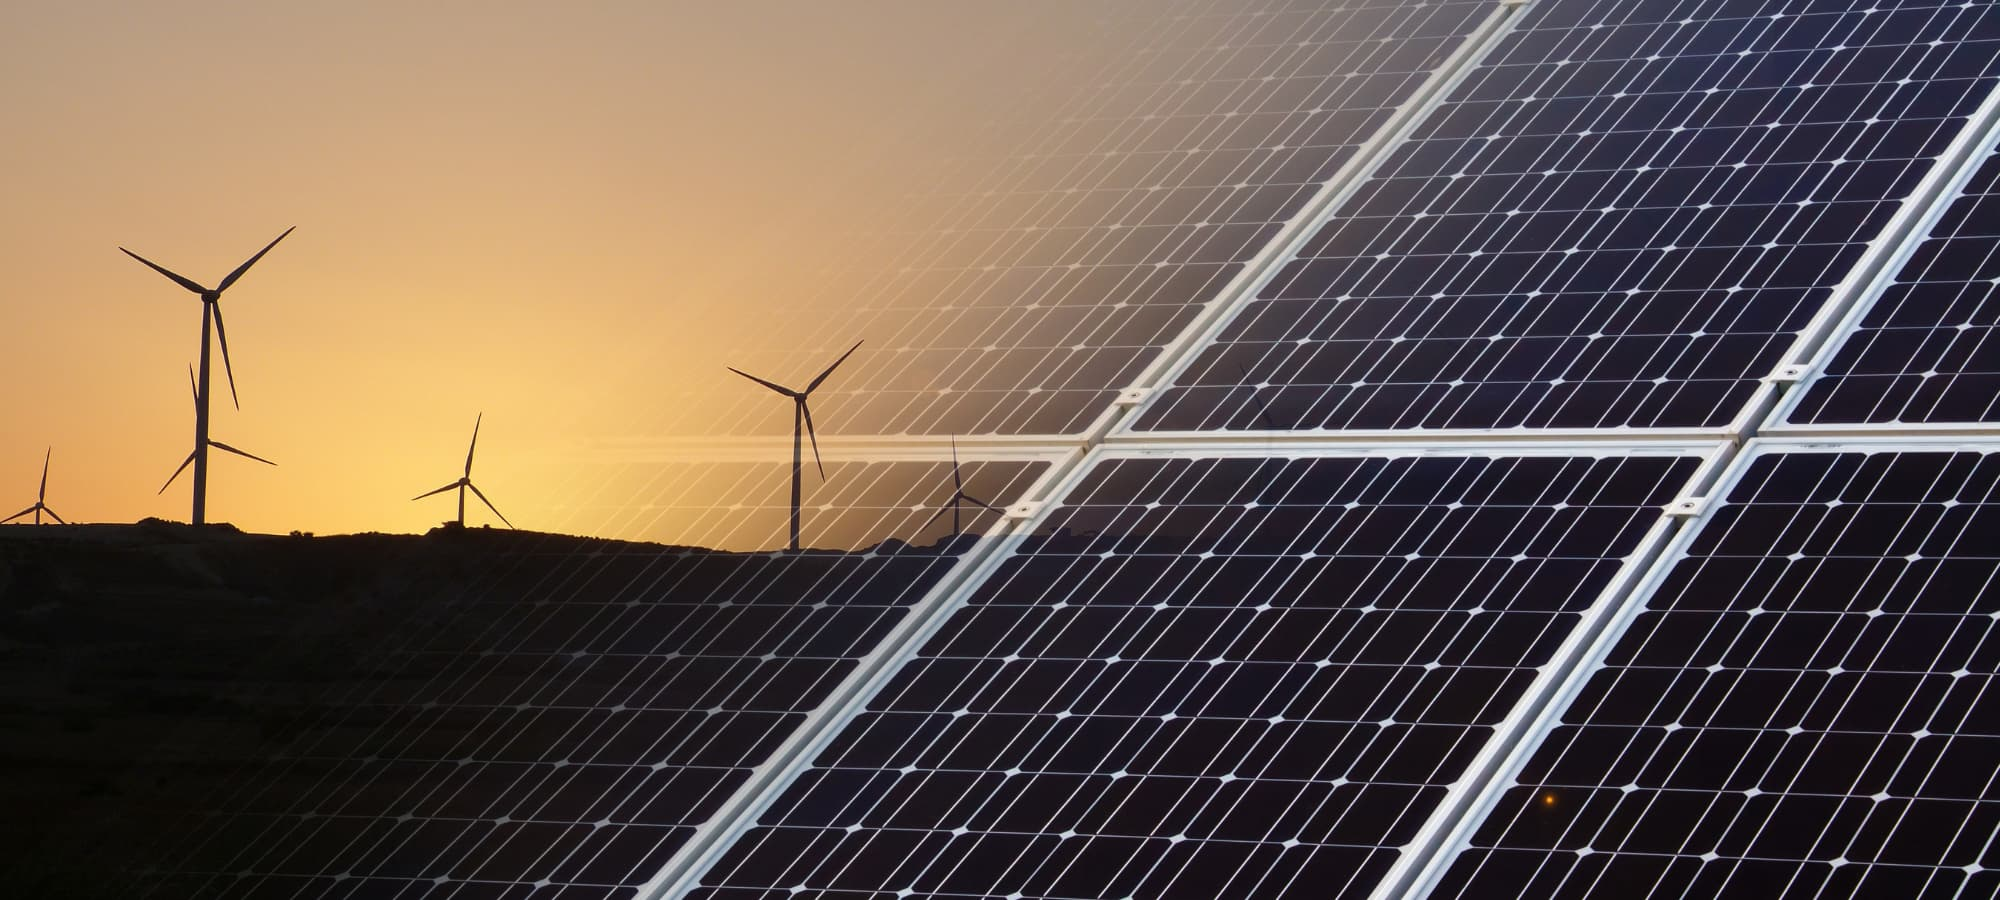 computer image of solar panel fading into a wind farm at sunset